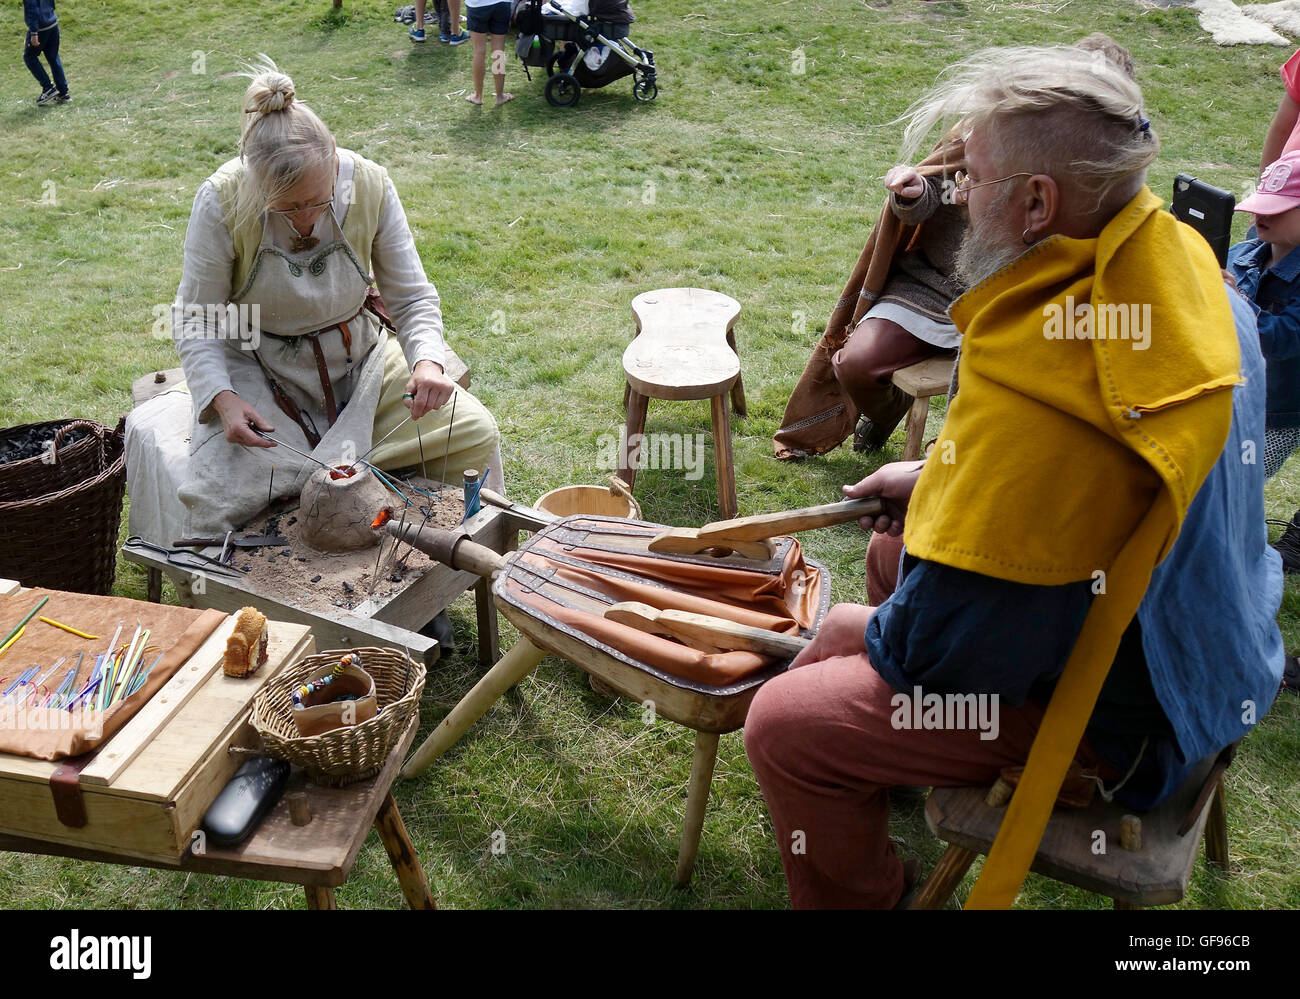 Elderly couple shows the early medieval glass pearl production by help of small portable clay furnace, Kungsbacka, - Stock Image